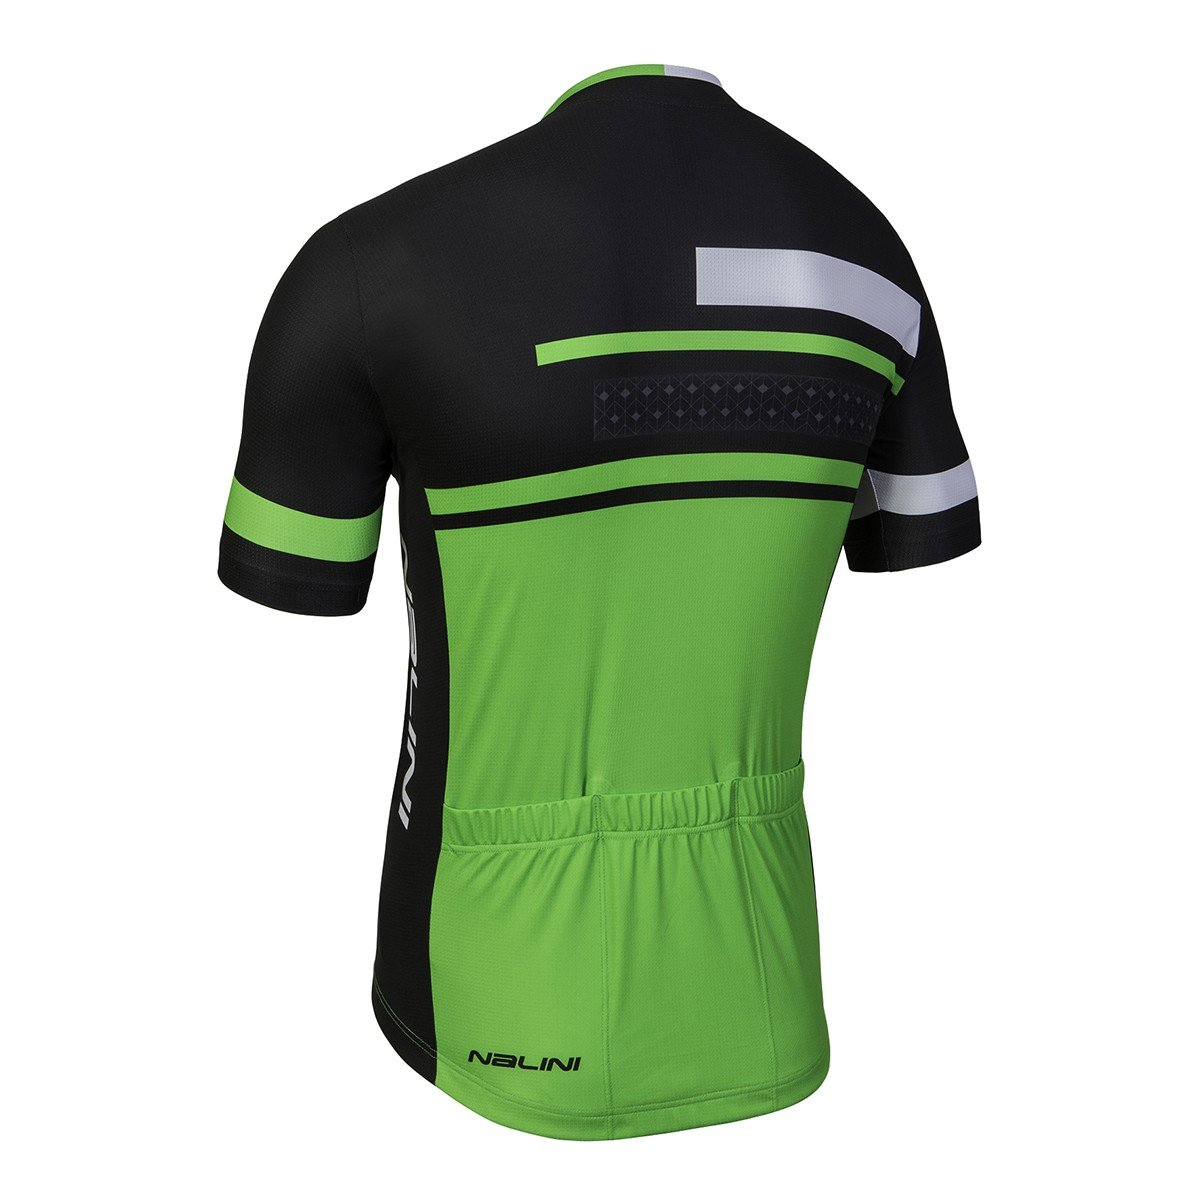 39a1686ba Available at  http   nalini.cc products nalini-vittoria-ss-jersey-2018-green-black utm source twitter utm medium publishing utm campaign   ...